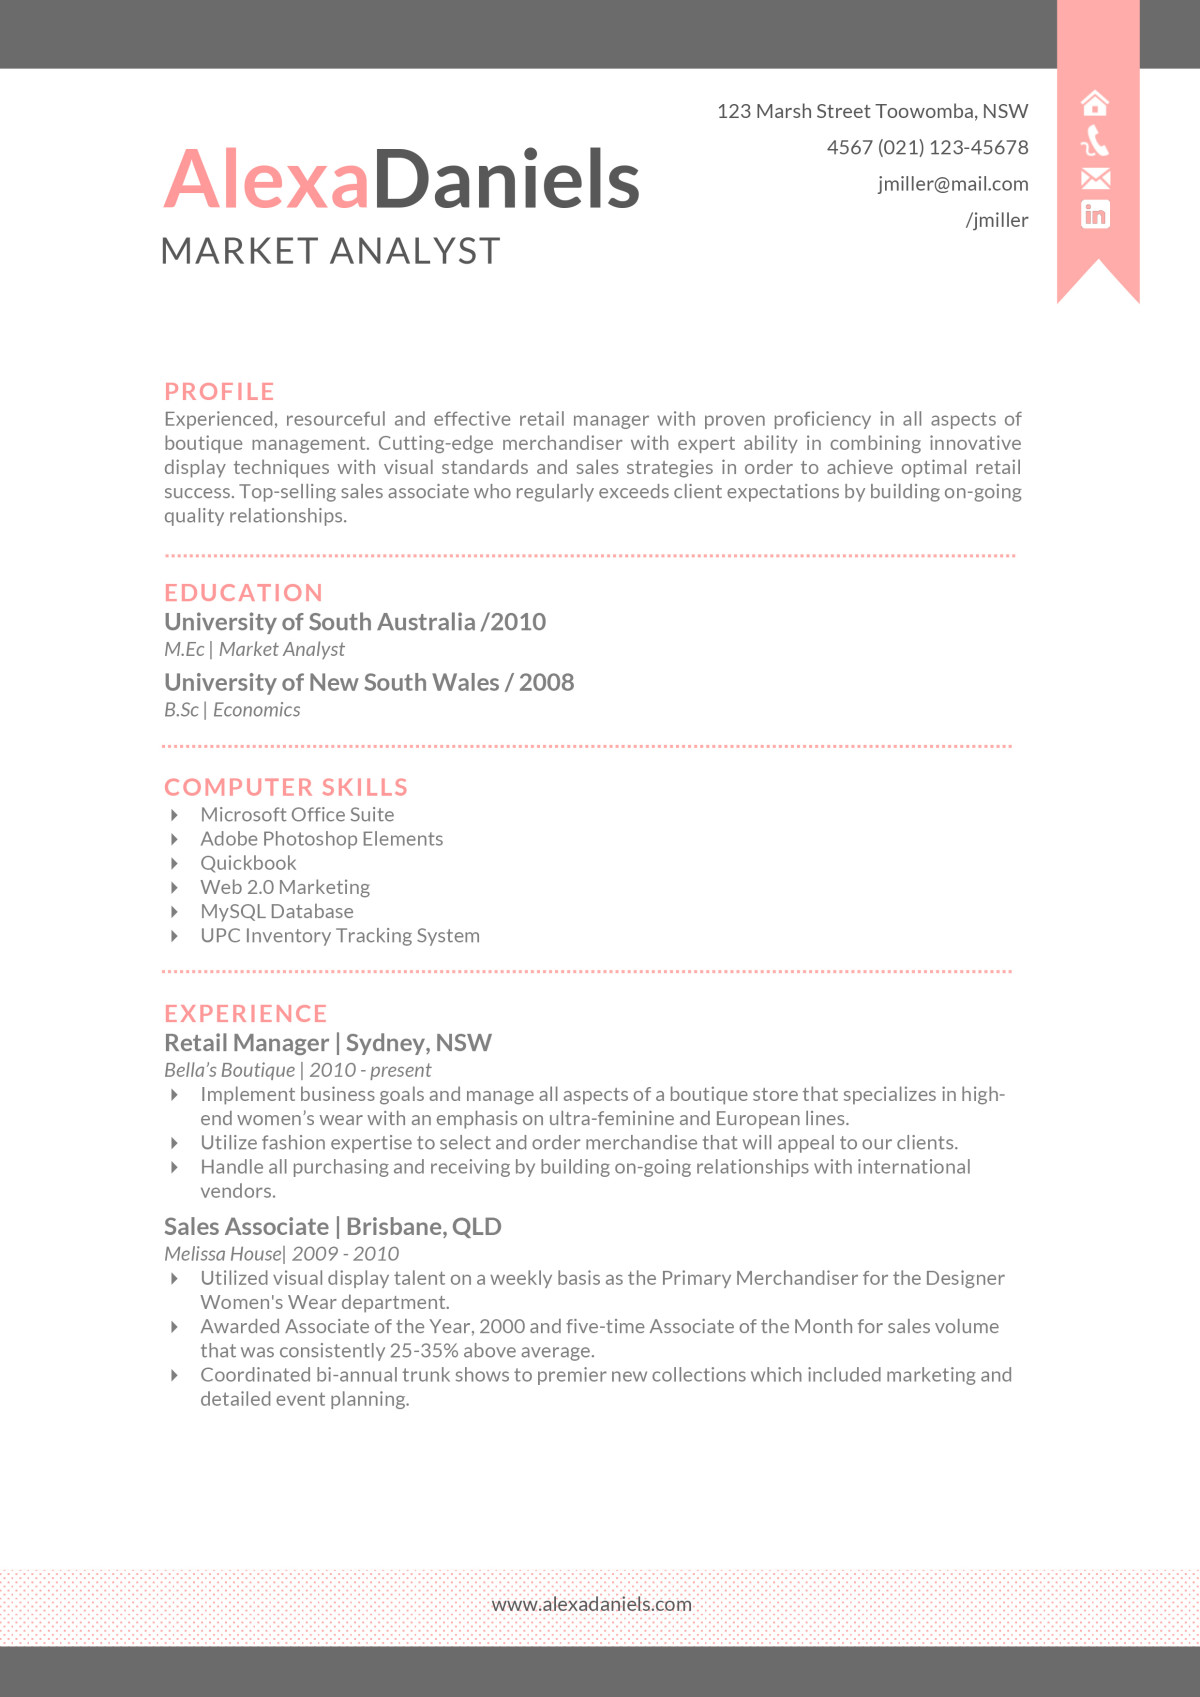 The Alexa Resume  Creative Resume Template